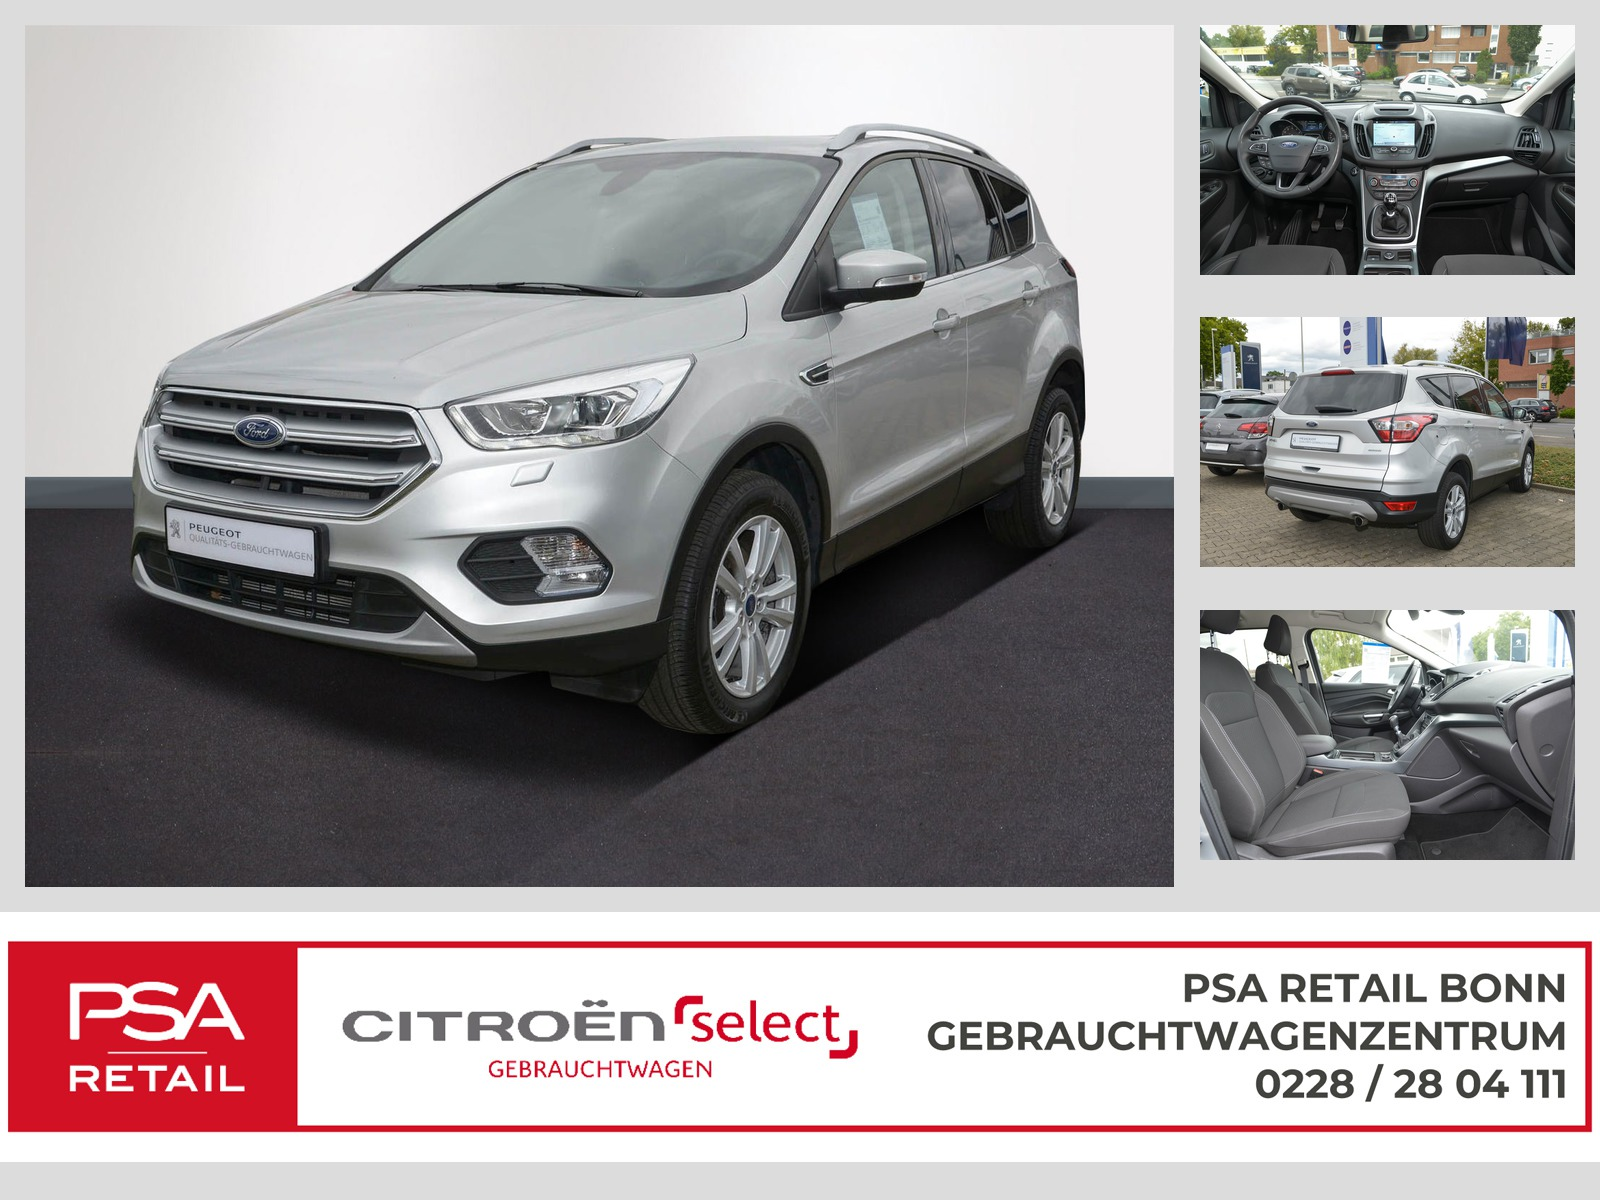 Ford Kuga 1.5 EcoBoost 2x4 Cool & Connect, Jahr 2017, Benzin